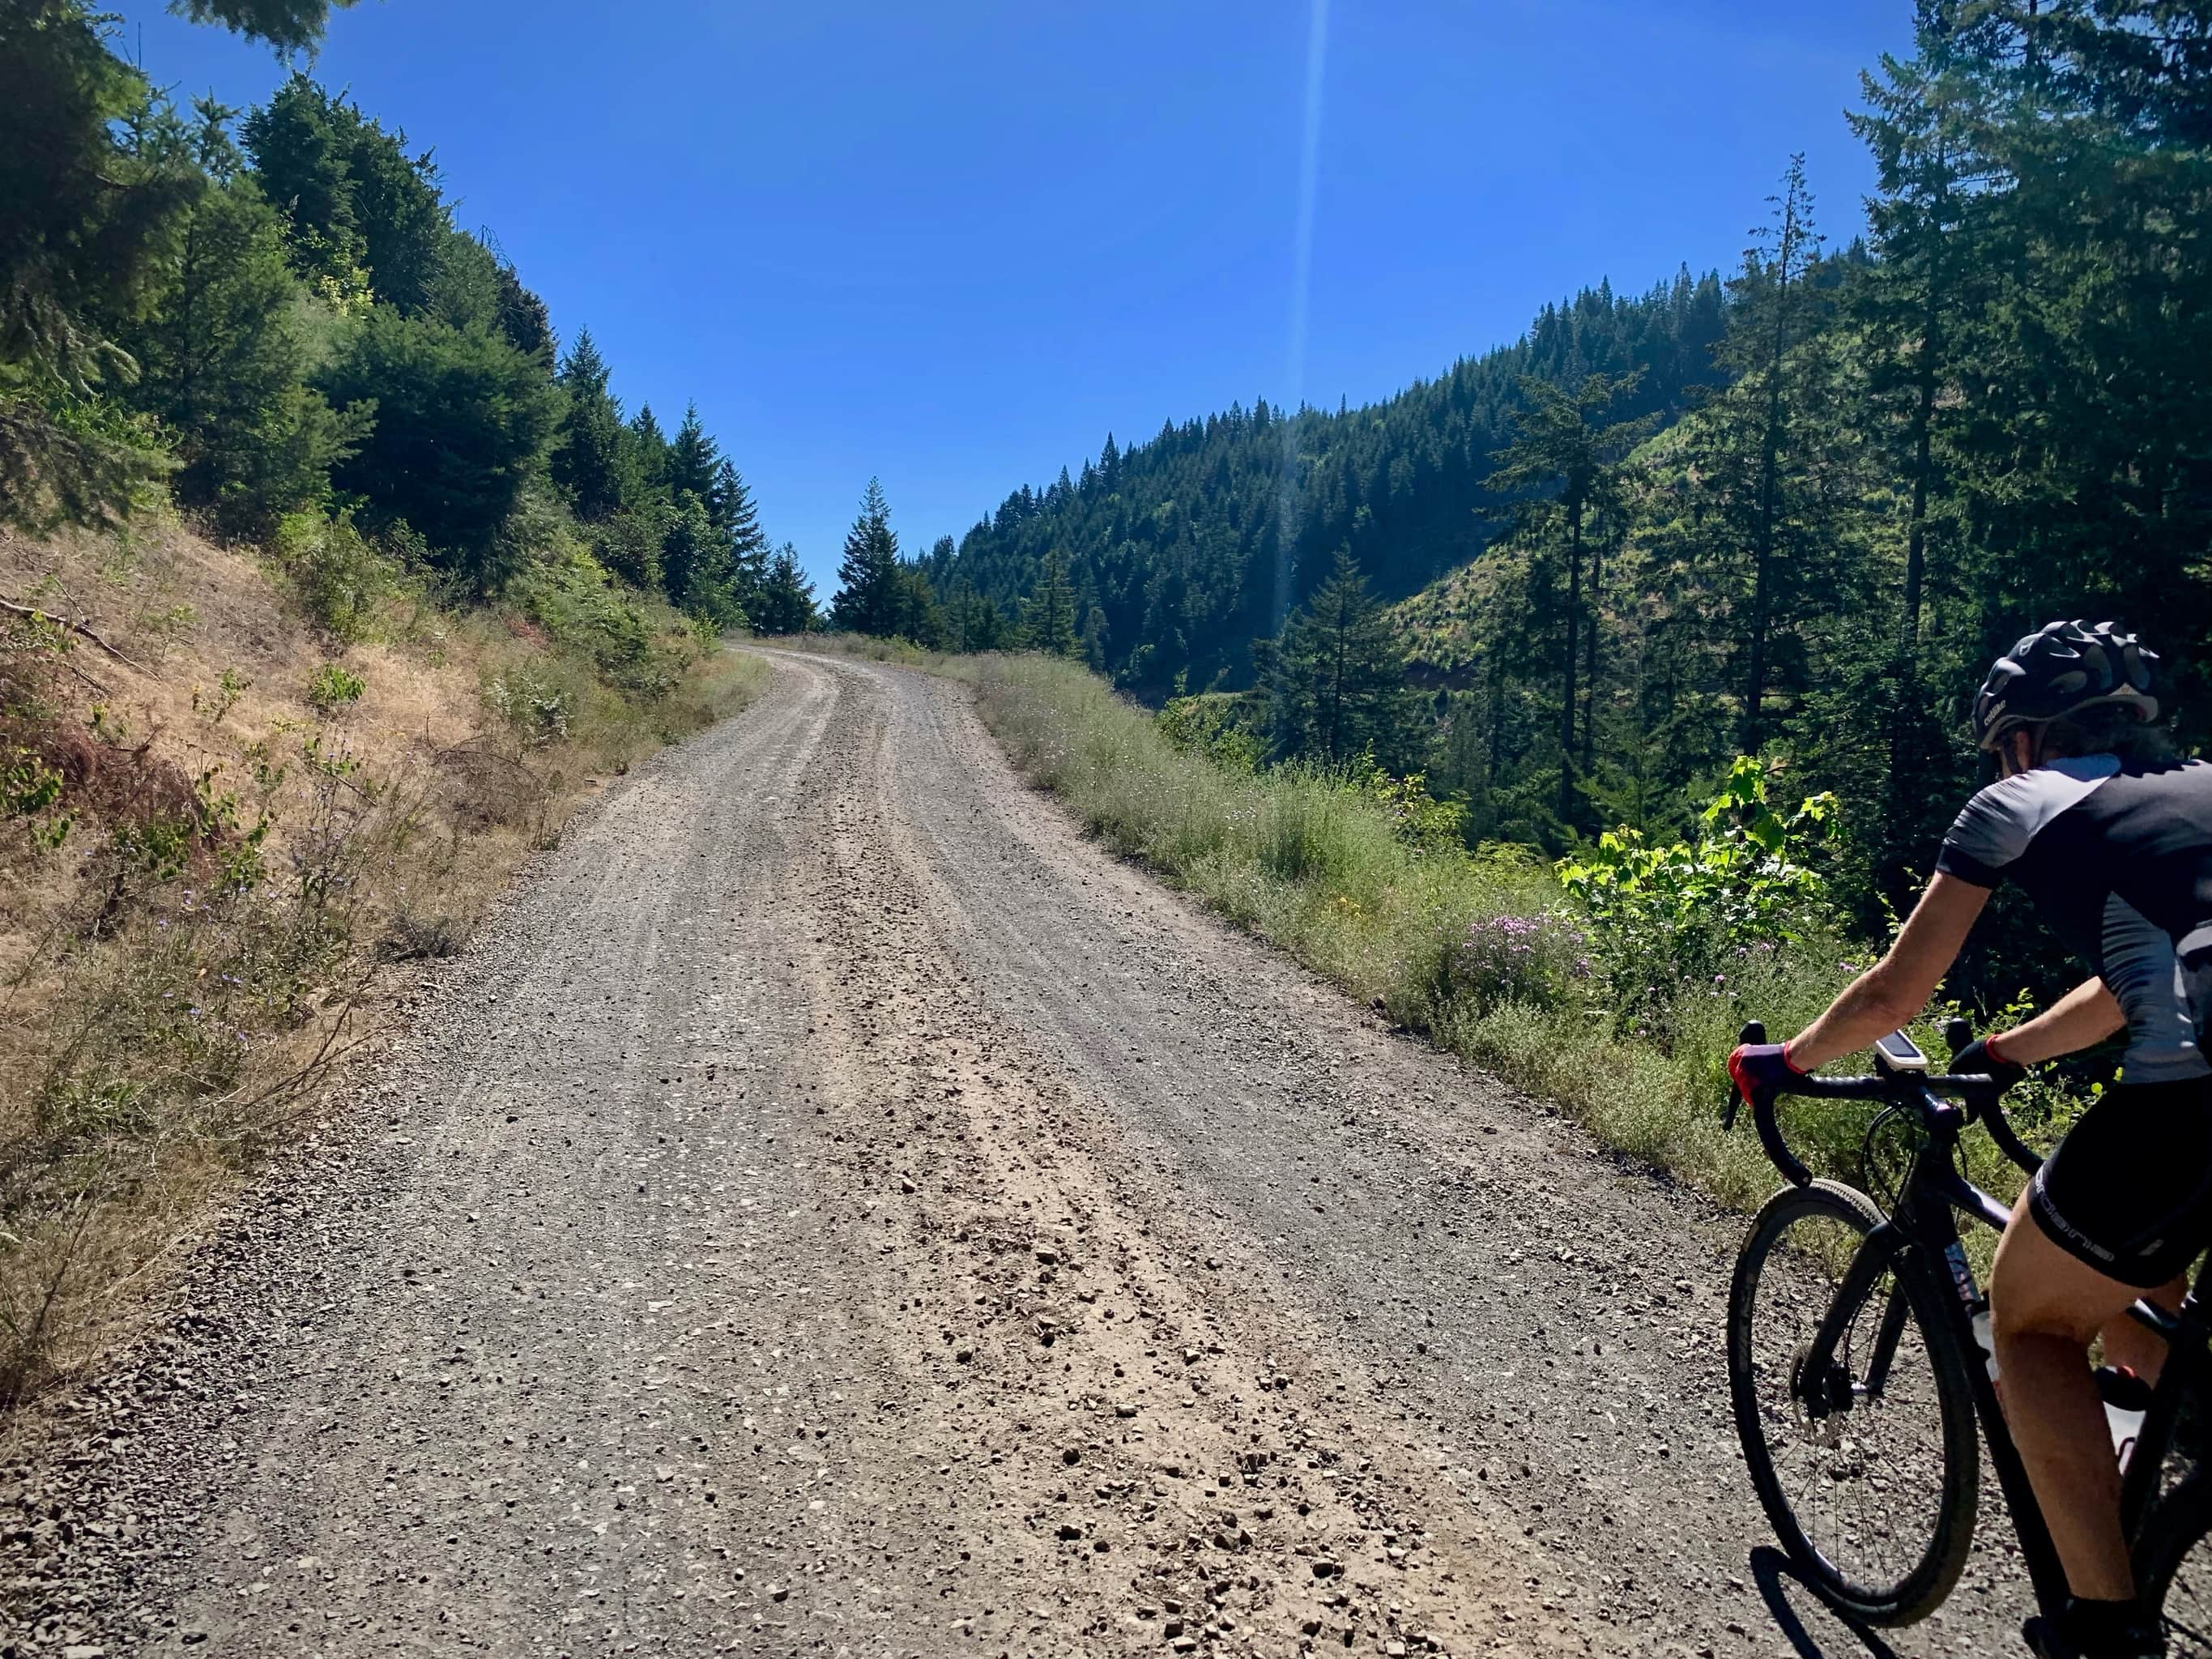 Bike rider on gravel road in Hood River county managed forest.